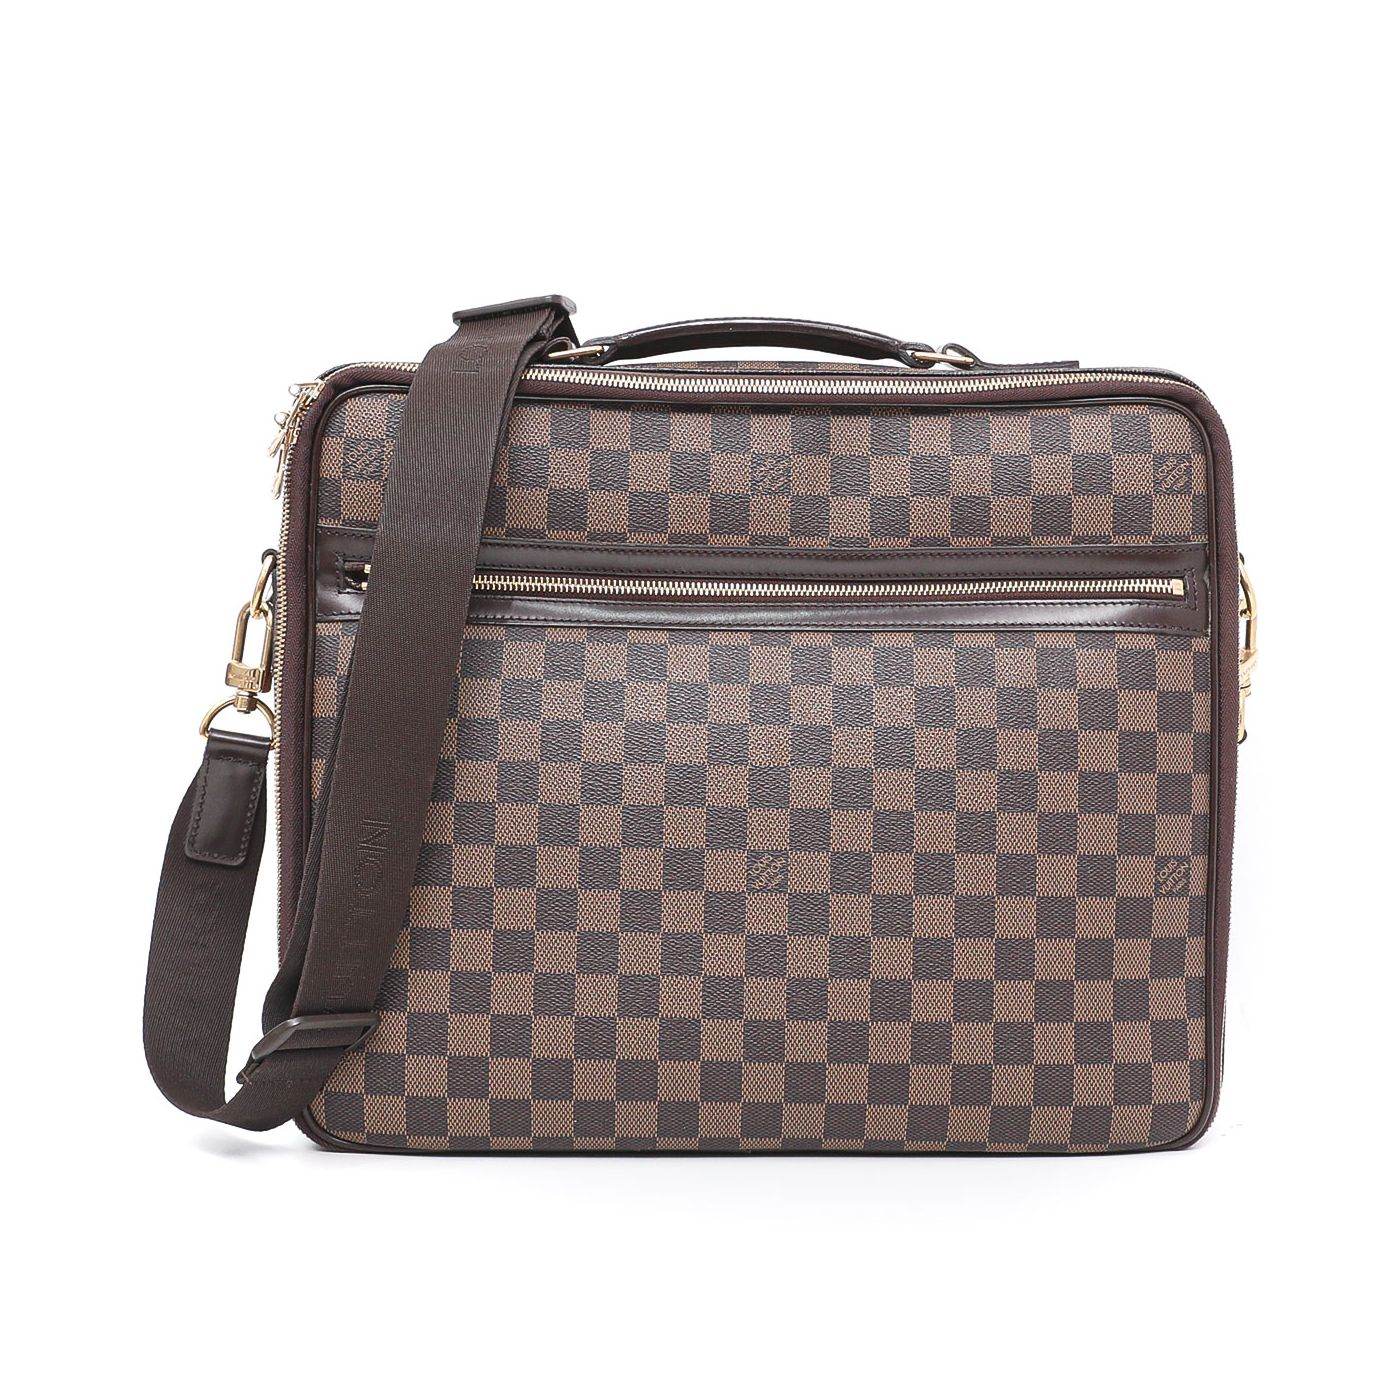 Louis Vuitton Ebene Porte Ordinateur Sabana Computer Case Bag